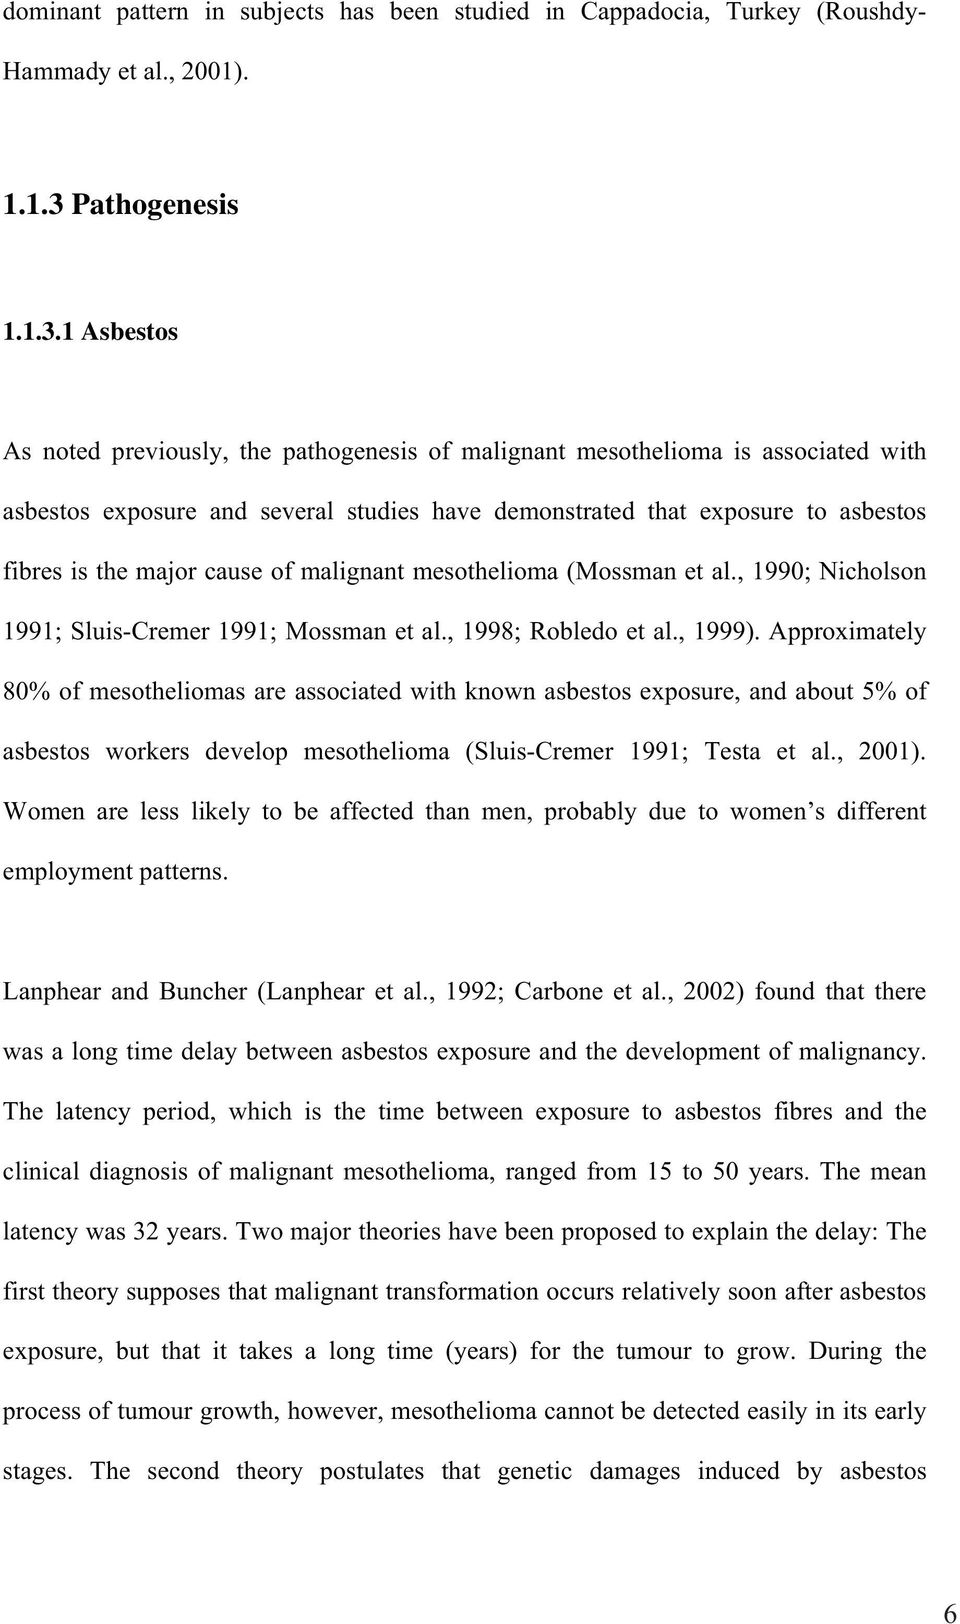 1 Asbestos As noted previously, the pathogenesis of malignant mesothelioma is associated with asbestos exposure and several studies have demonstrated that exposure to asbestos fibres is the major